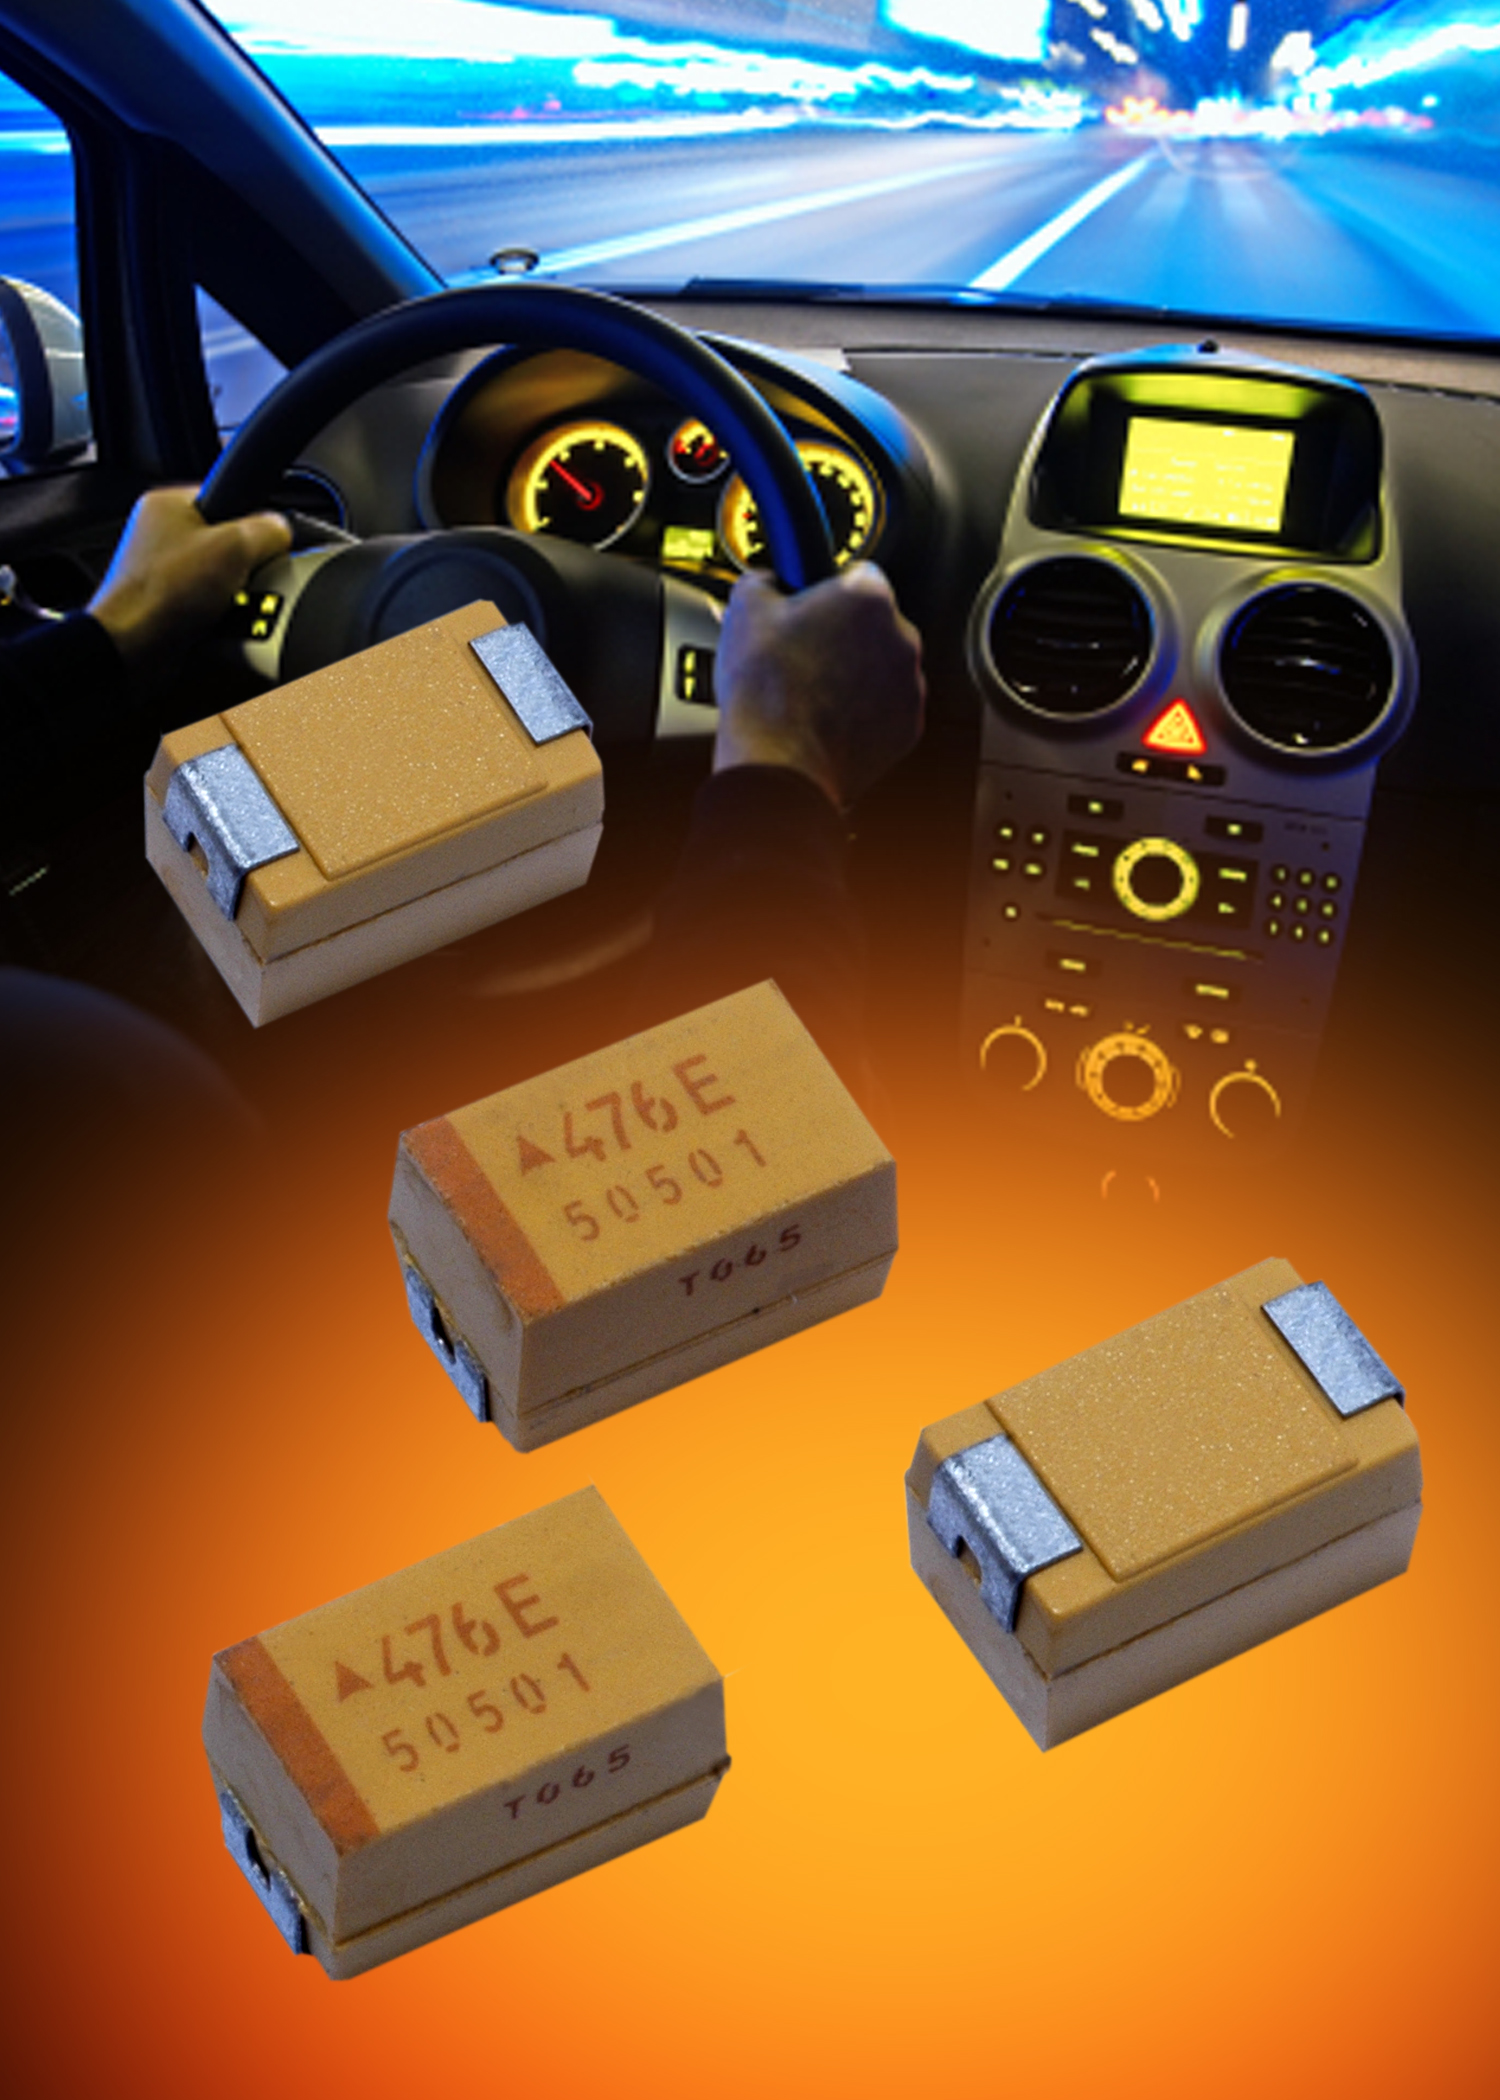 AVX Adds New Case Size & Codes to its Automotive-Grade Ultralow-ESR Tantalum Capacitors